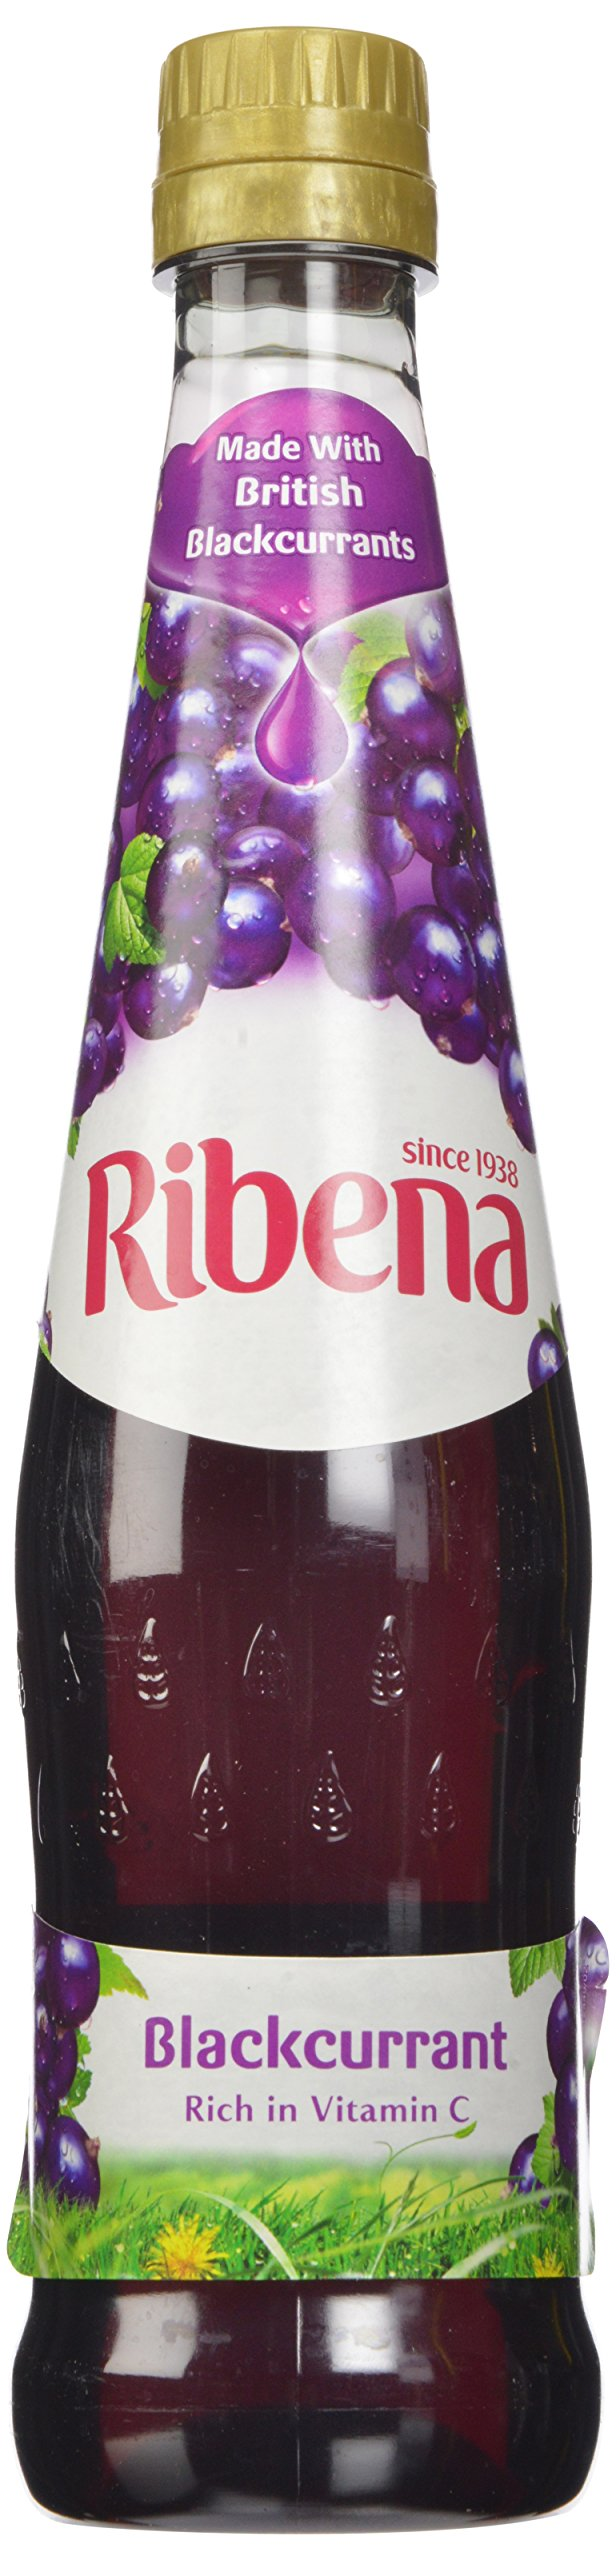 Ribena Original Blackcurrant Drink, 600 ml Bottle (Pack of 12) by Ribena (Image #4)